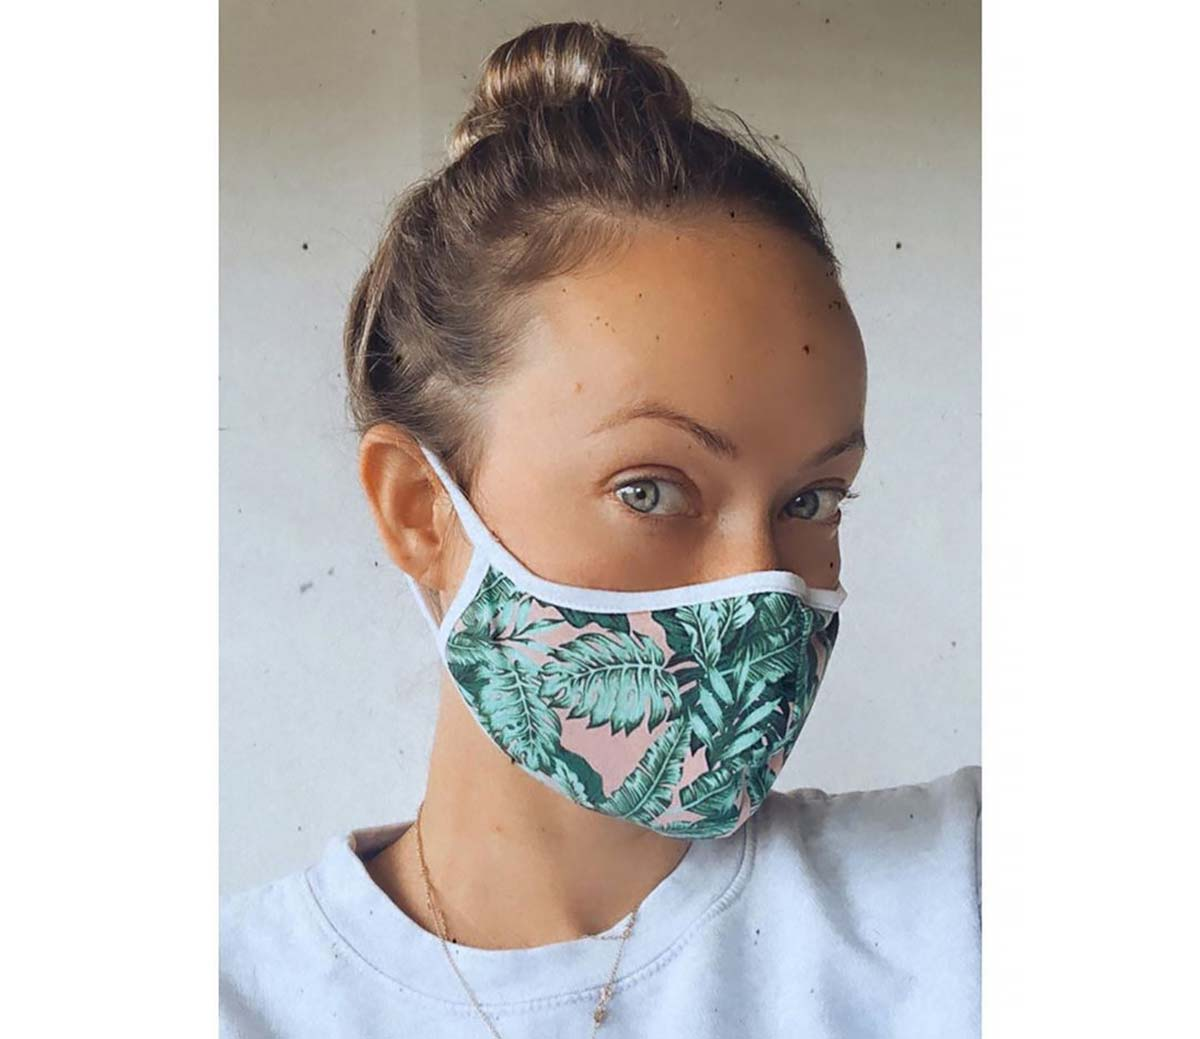 Celebrities Wearing Stylish COVID-19 Protective Face Masks: Shop